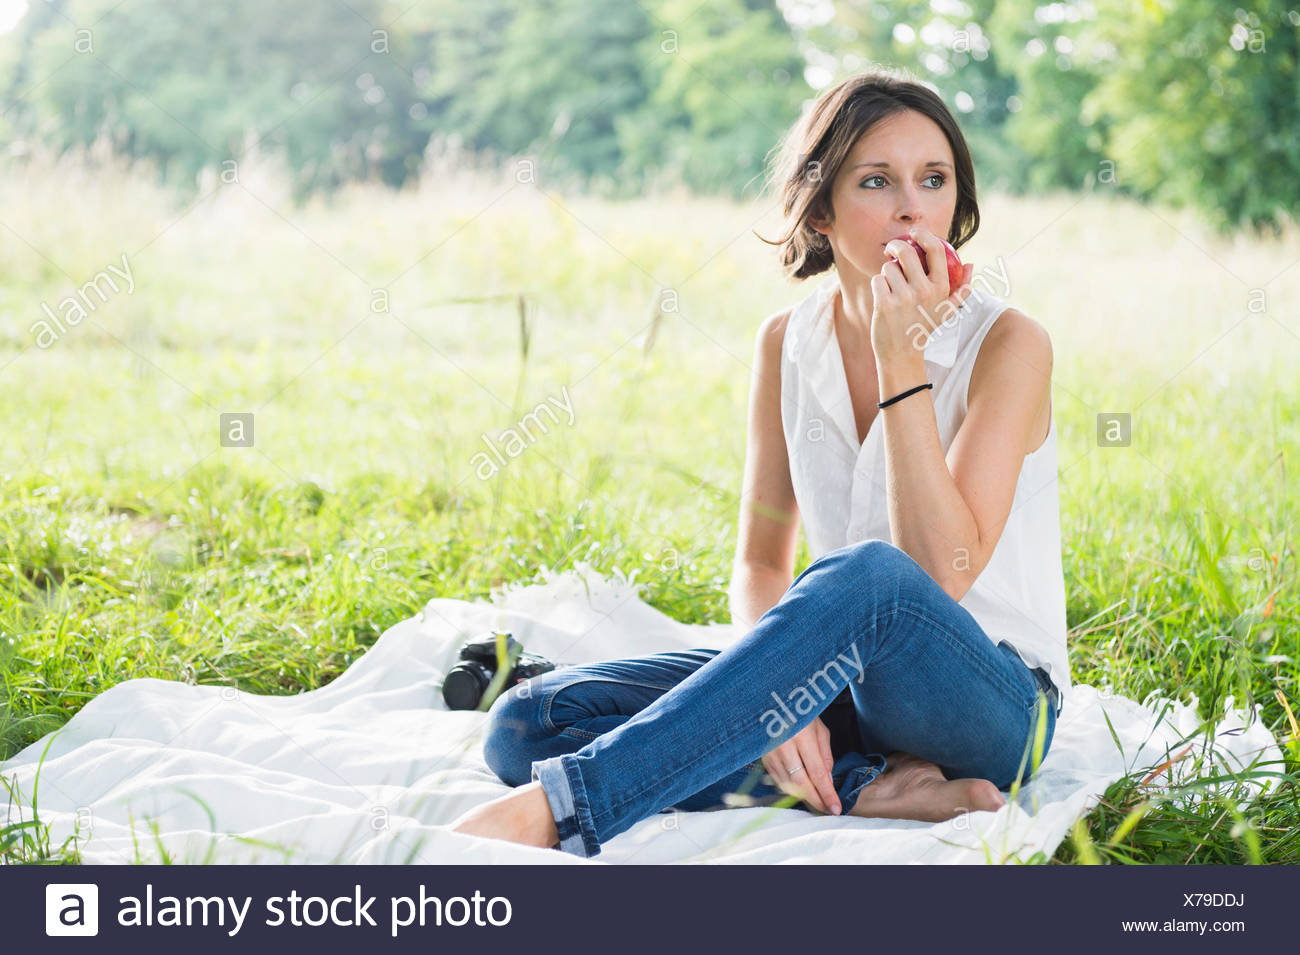 Mid adult woman sitting on picnic blanket in field eating an apple Stock Photo